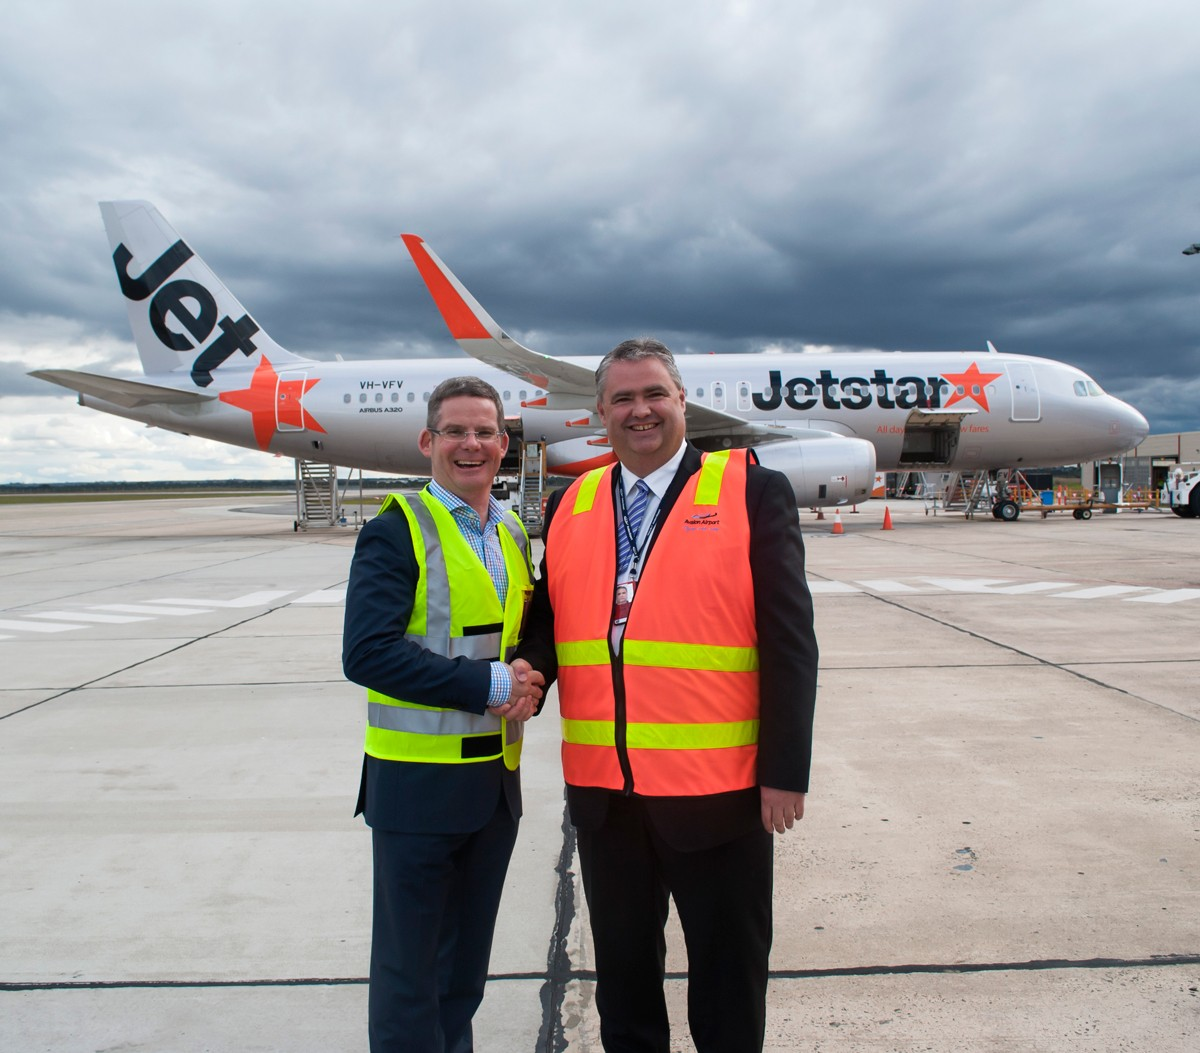 Ten Year Jetstar Commitment